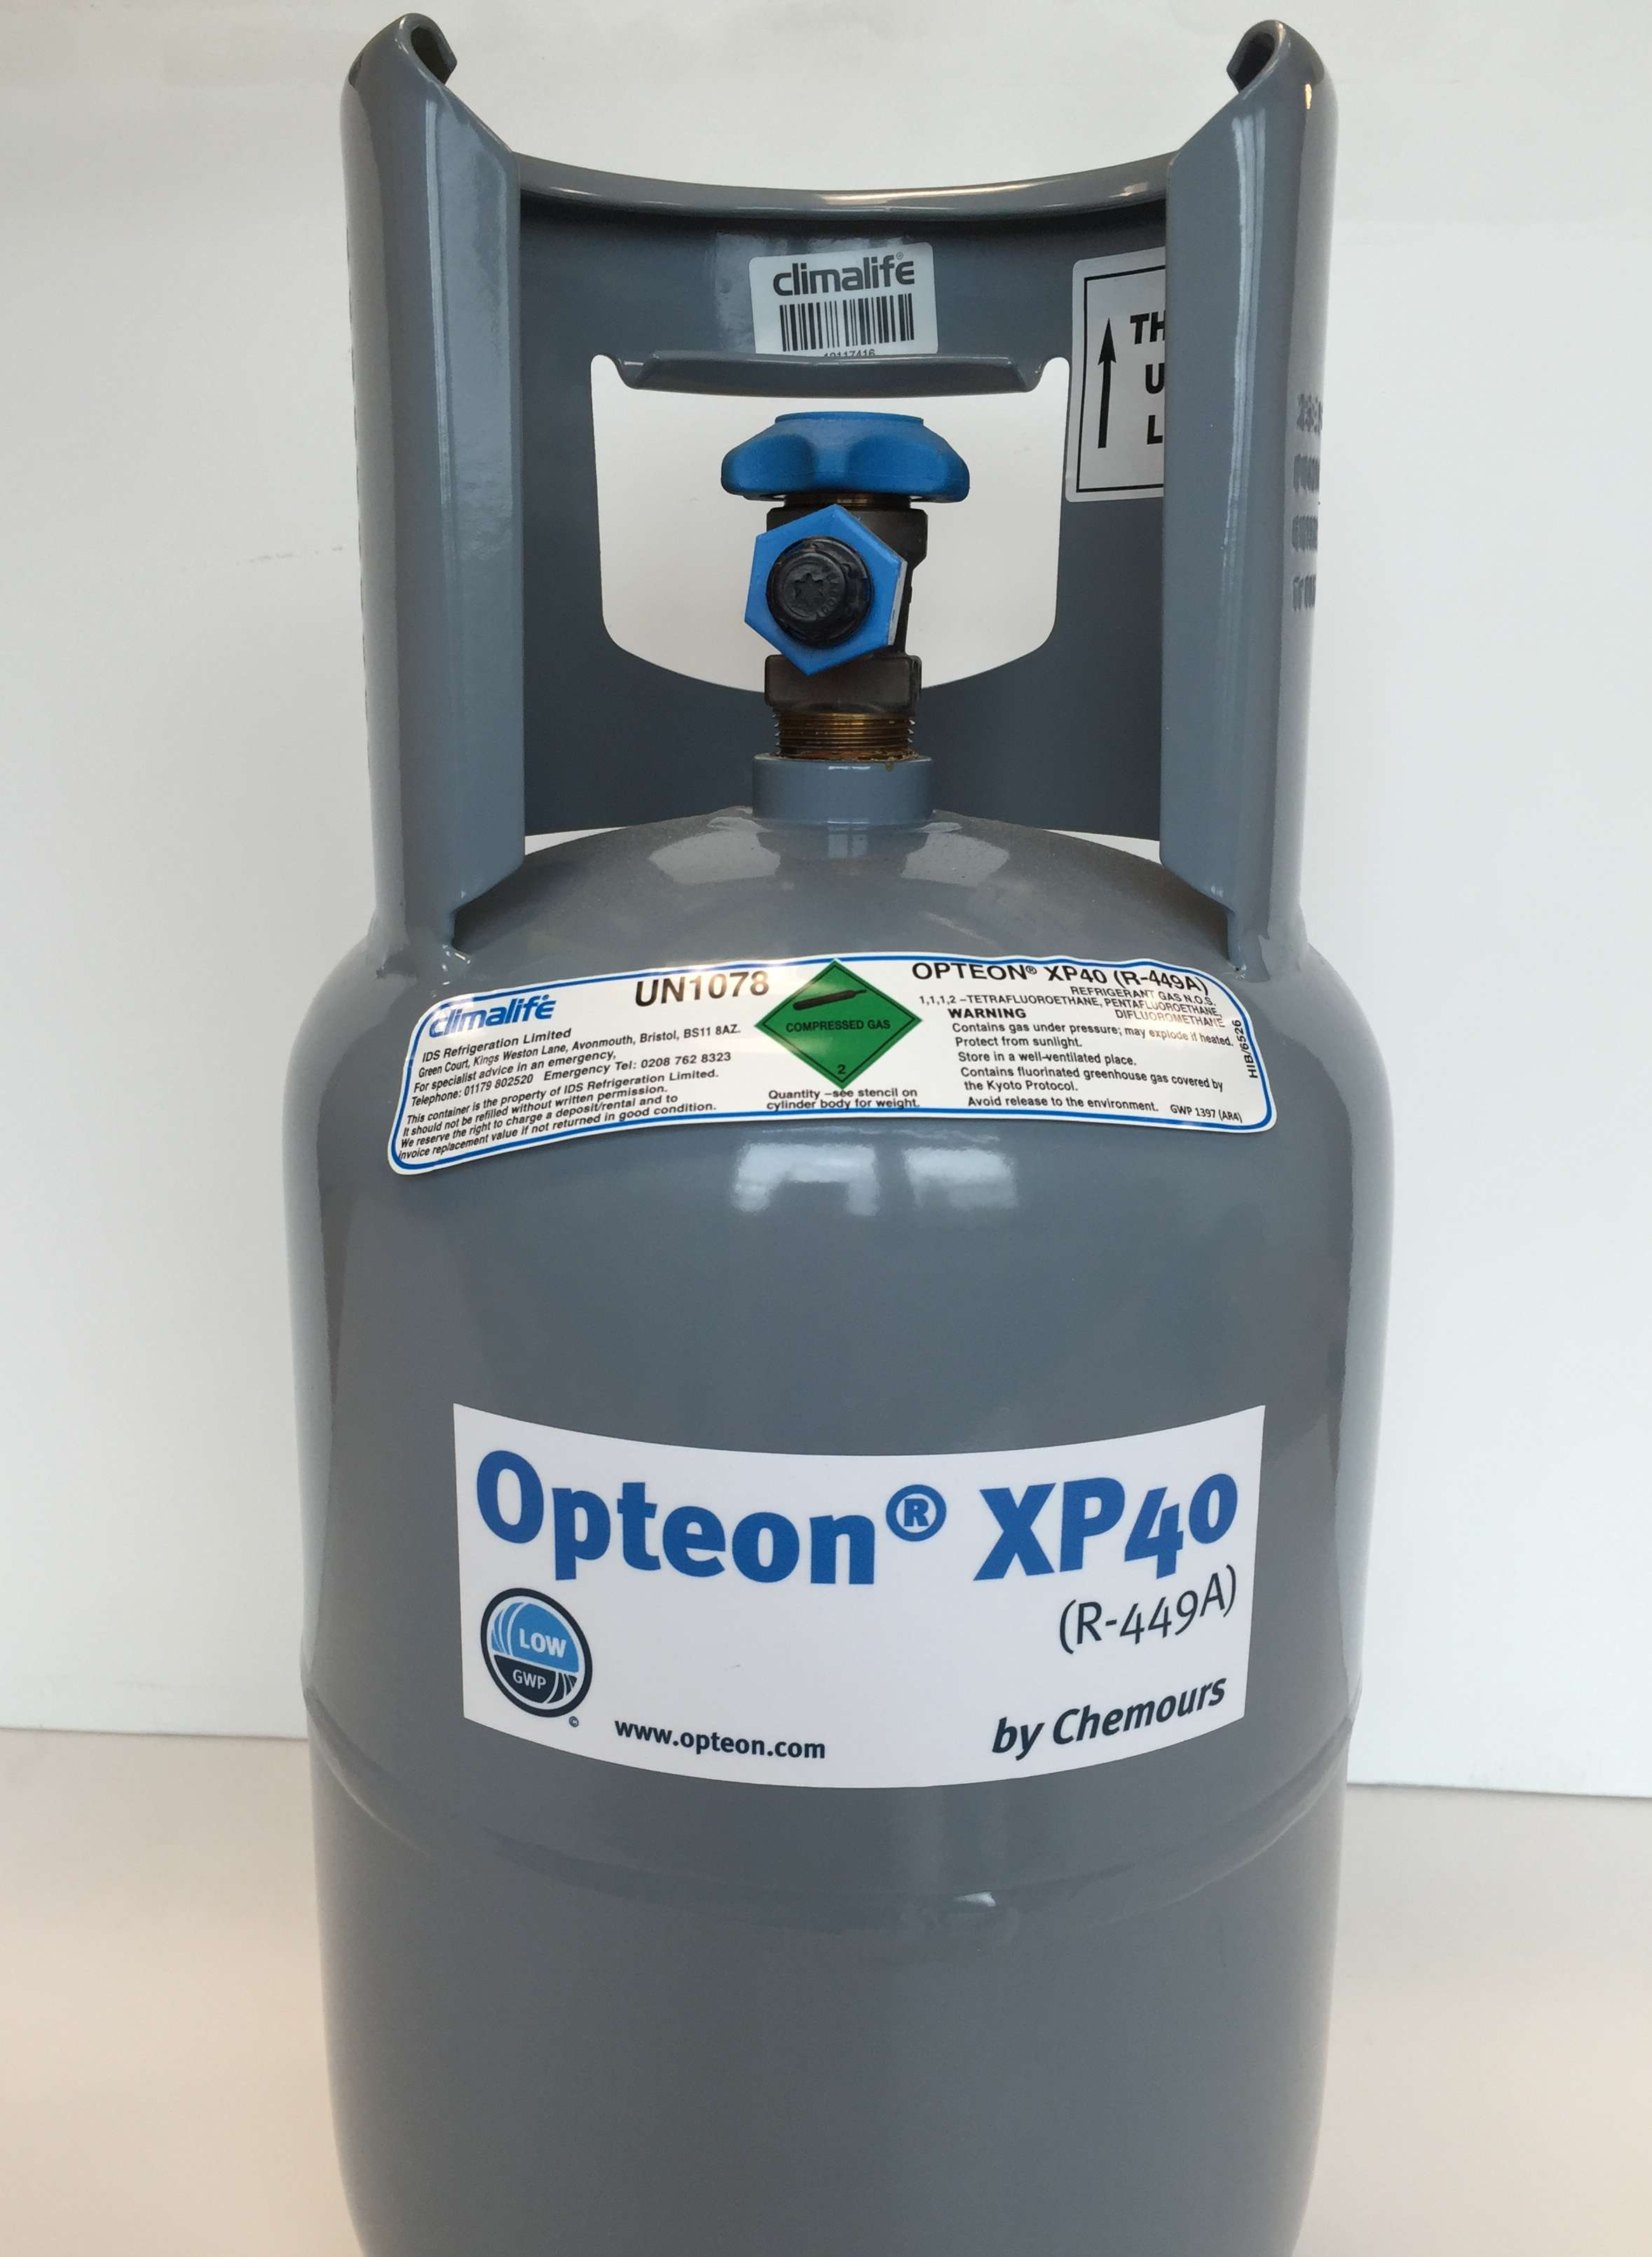 Opteon XP40 from Climalife UK